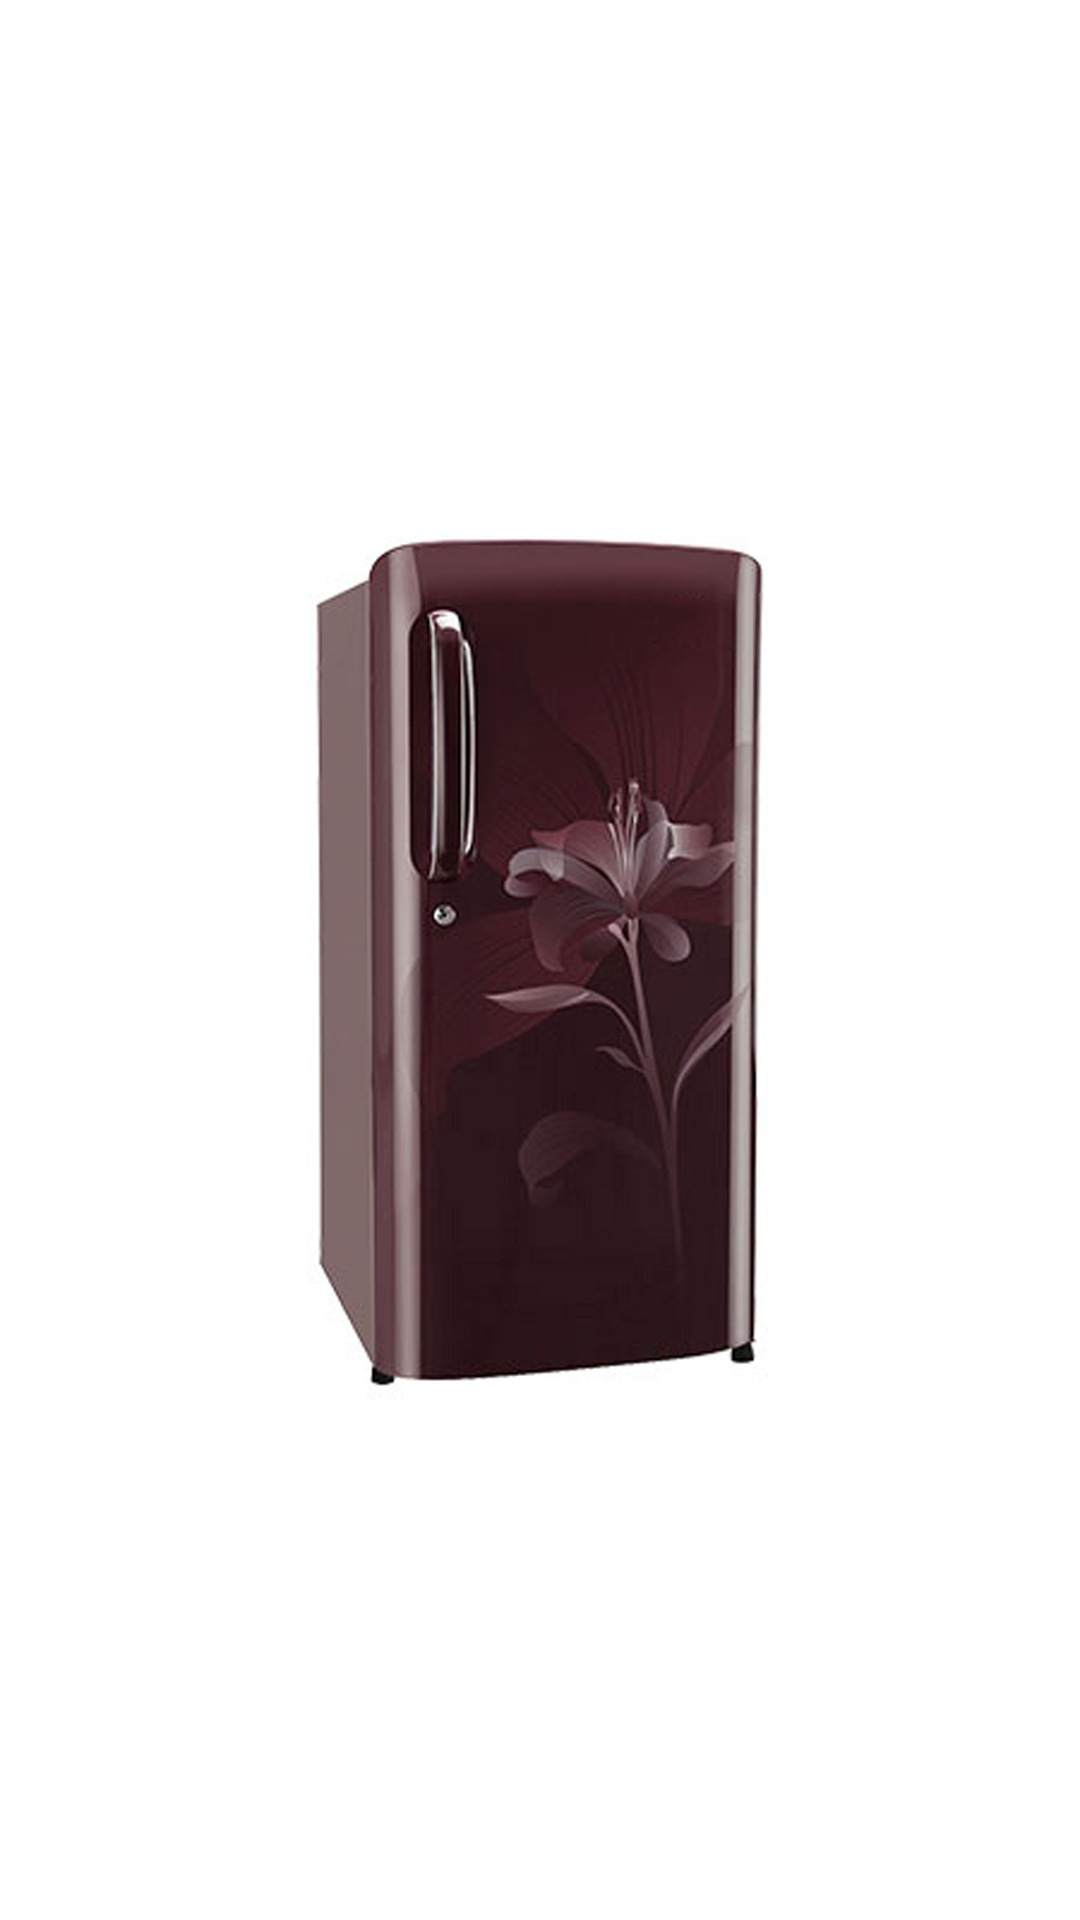 LG GL-B201ASLN 190 L Single Door Refrigerator (Scarlet Liley)